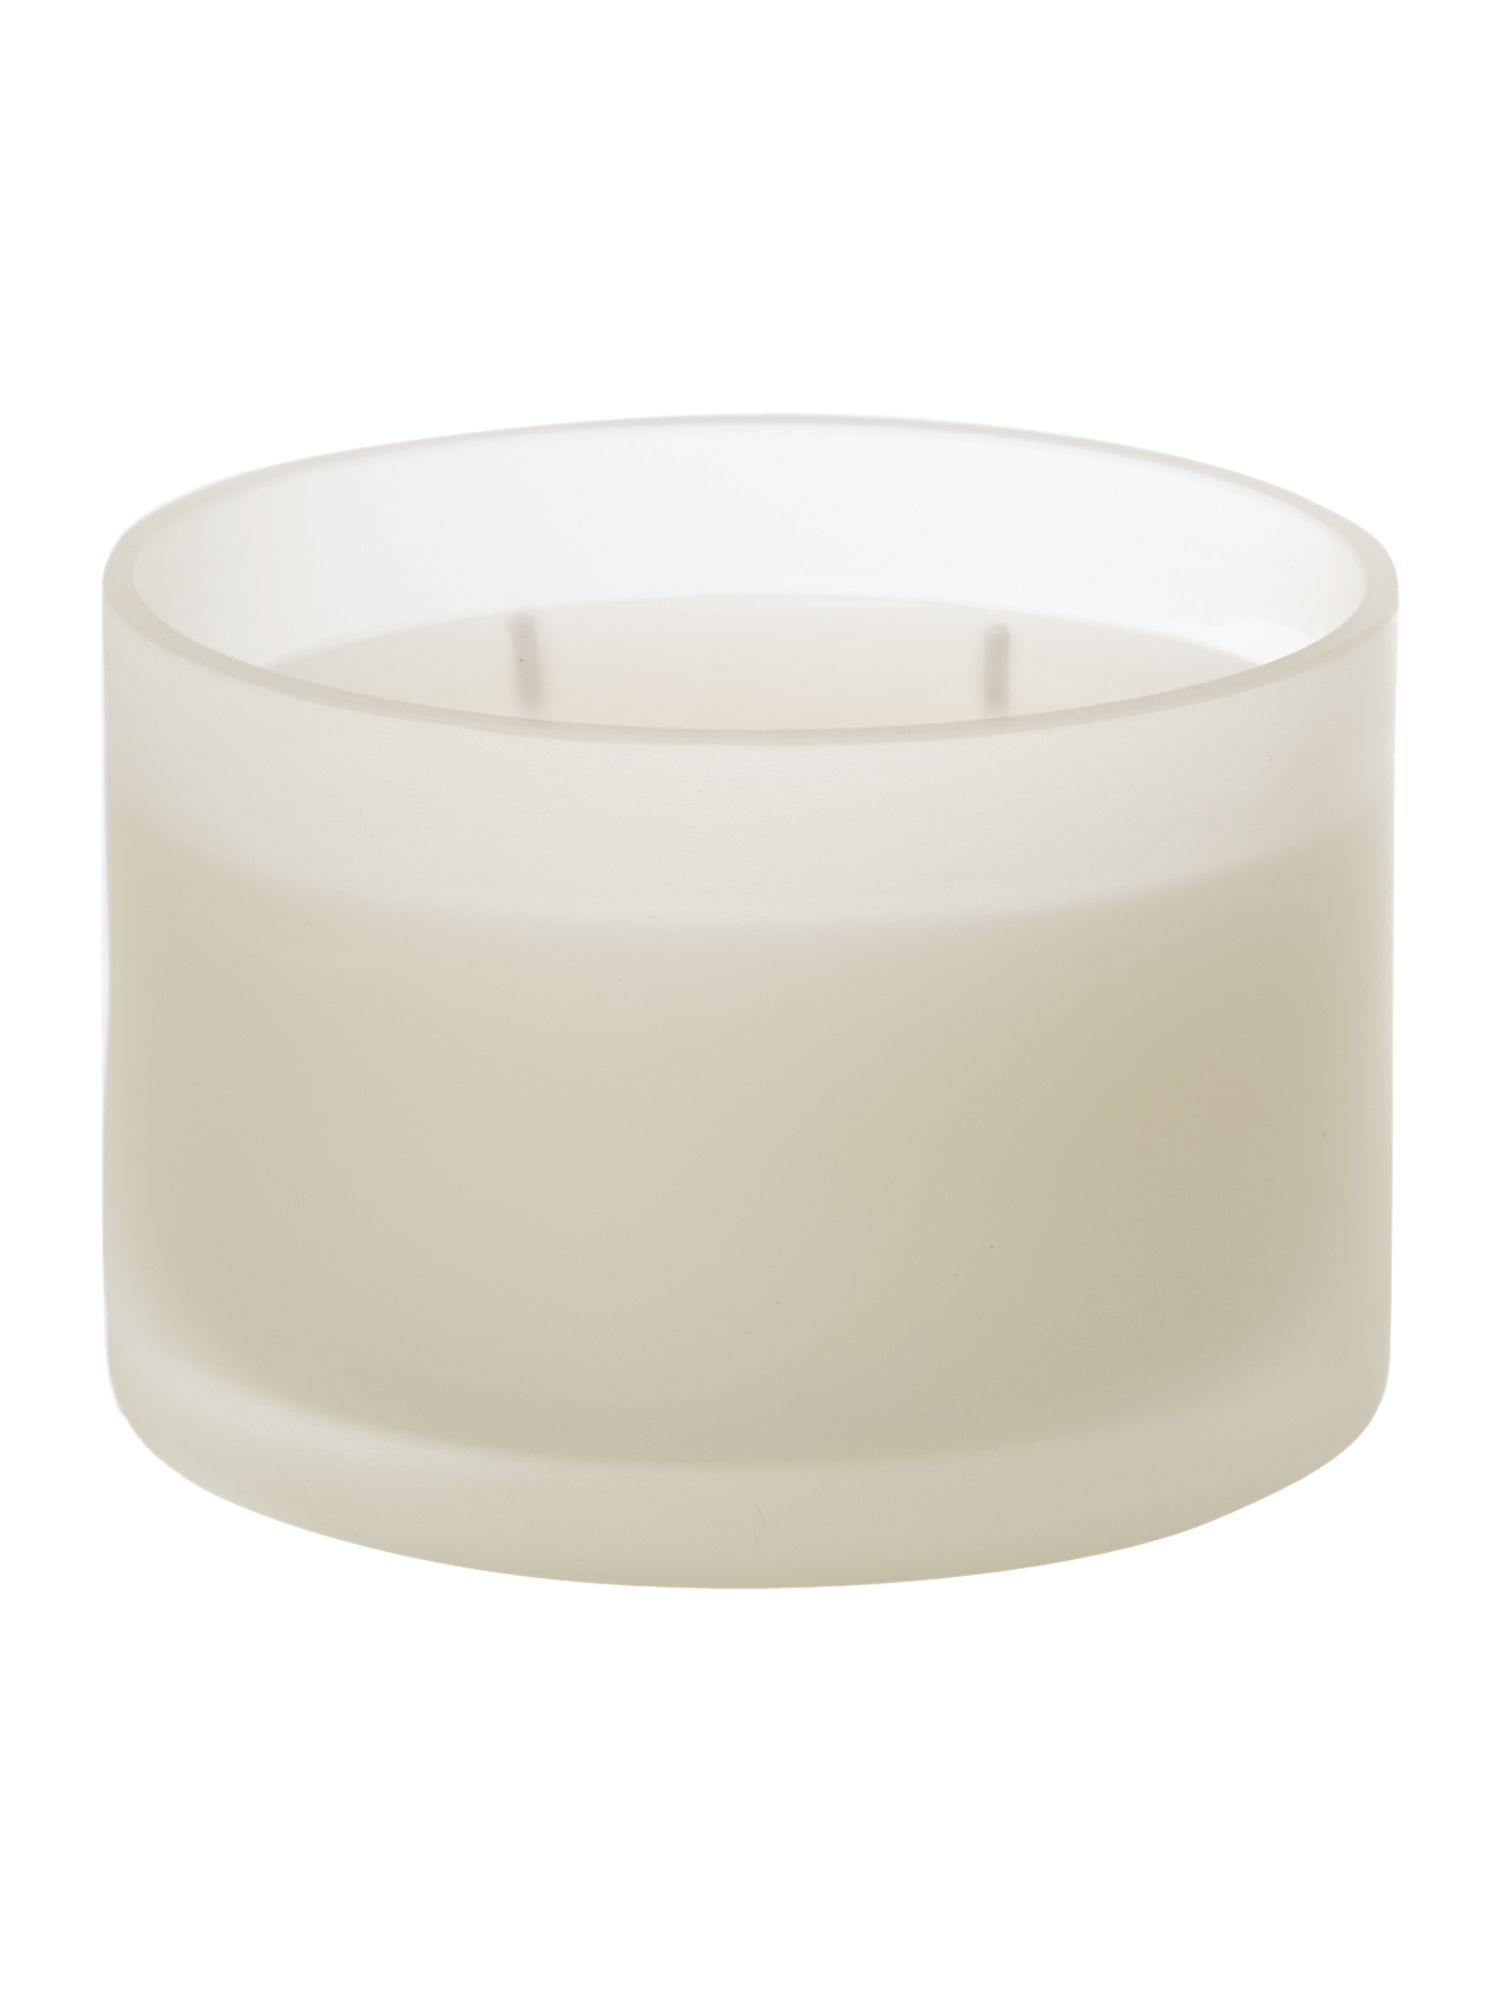 Calm small boxed candle